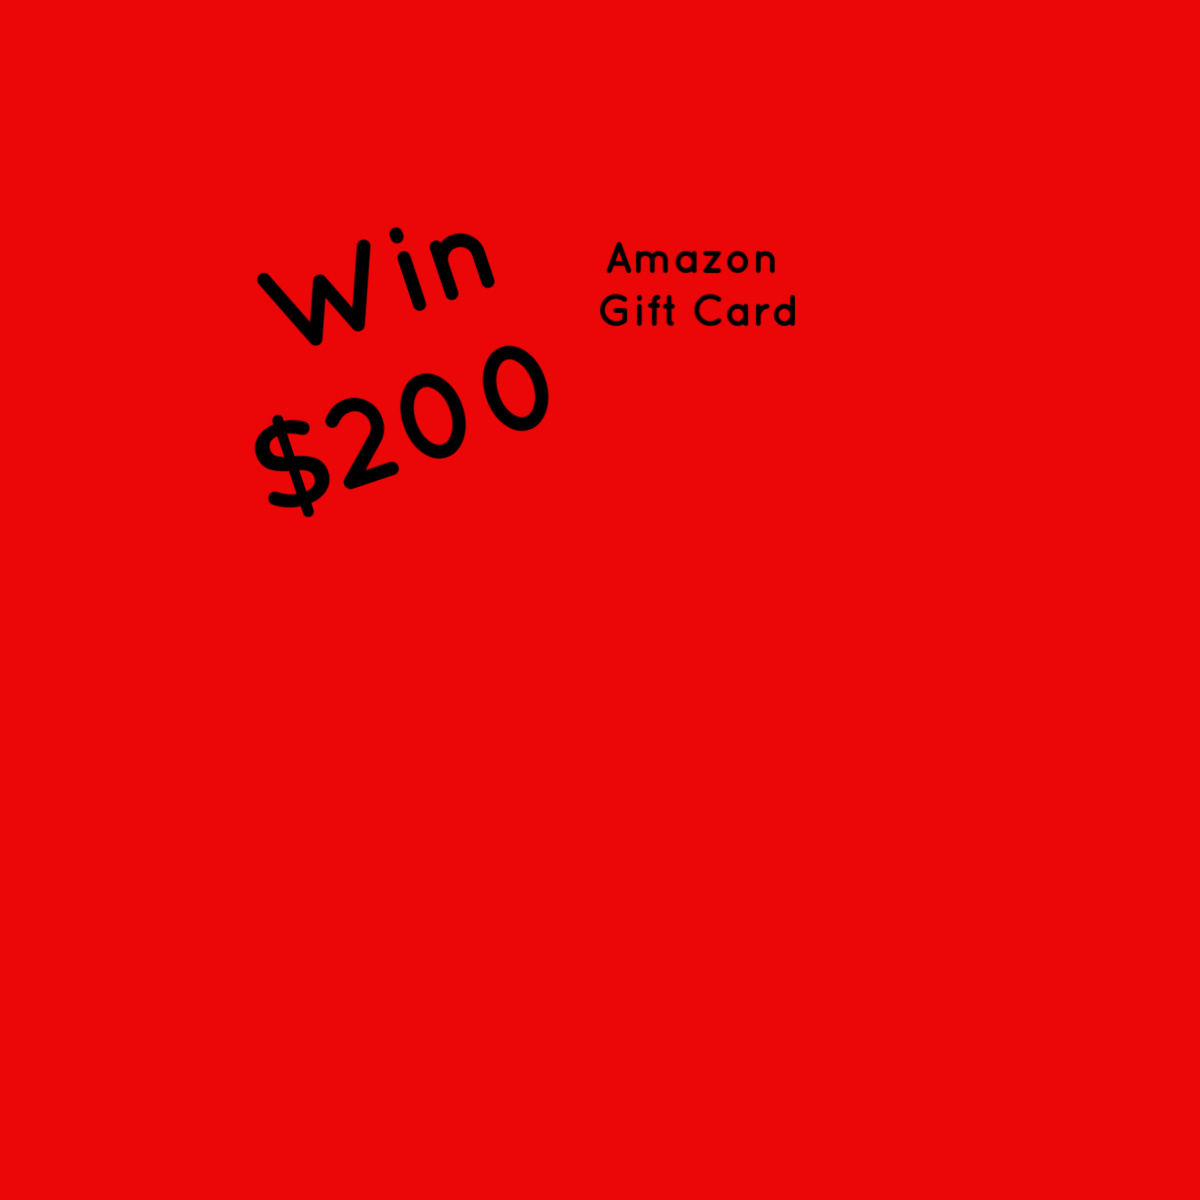 Win an Amazon Gift Card for $200 (first prize) or $100 (second prize)